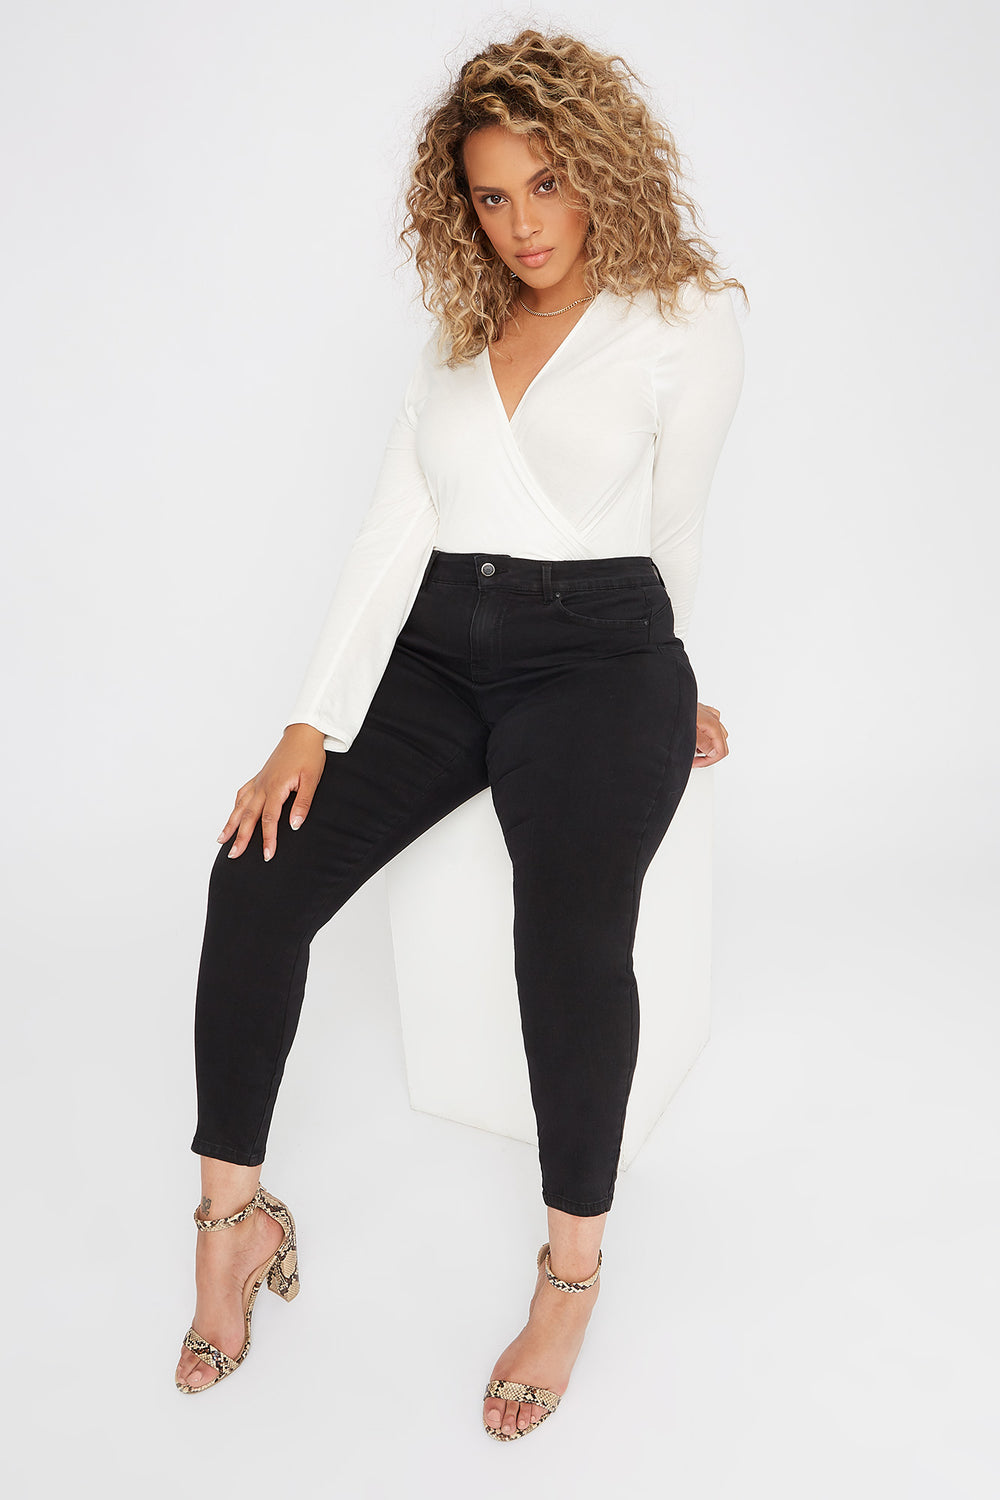 Plus Size Butt, I Love You High-Rise Tulip Push-Up Skinny Jean Black